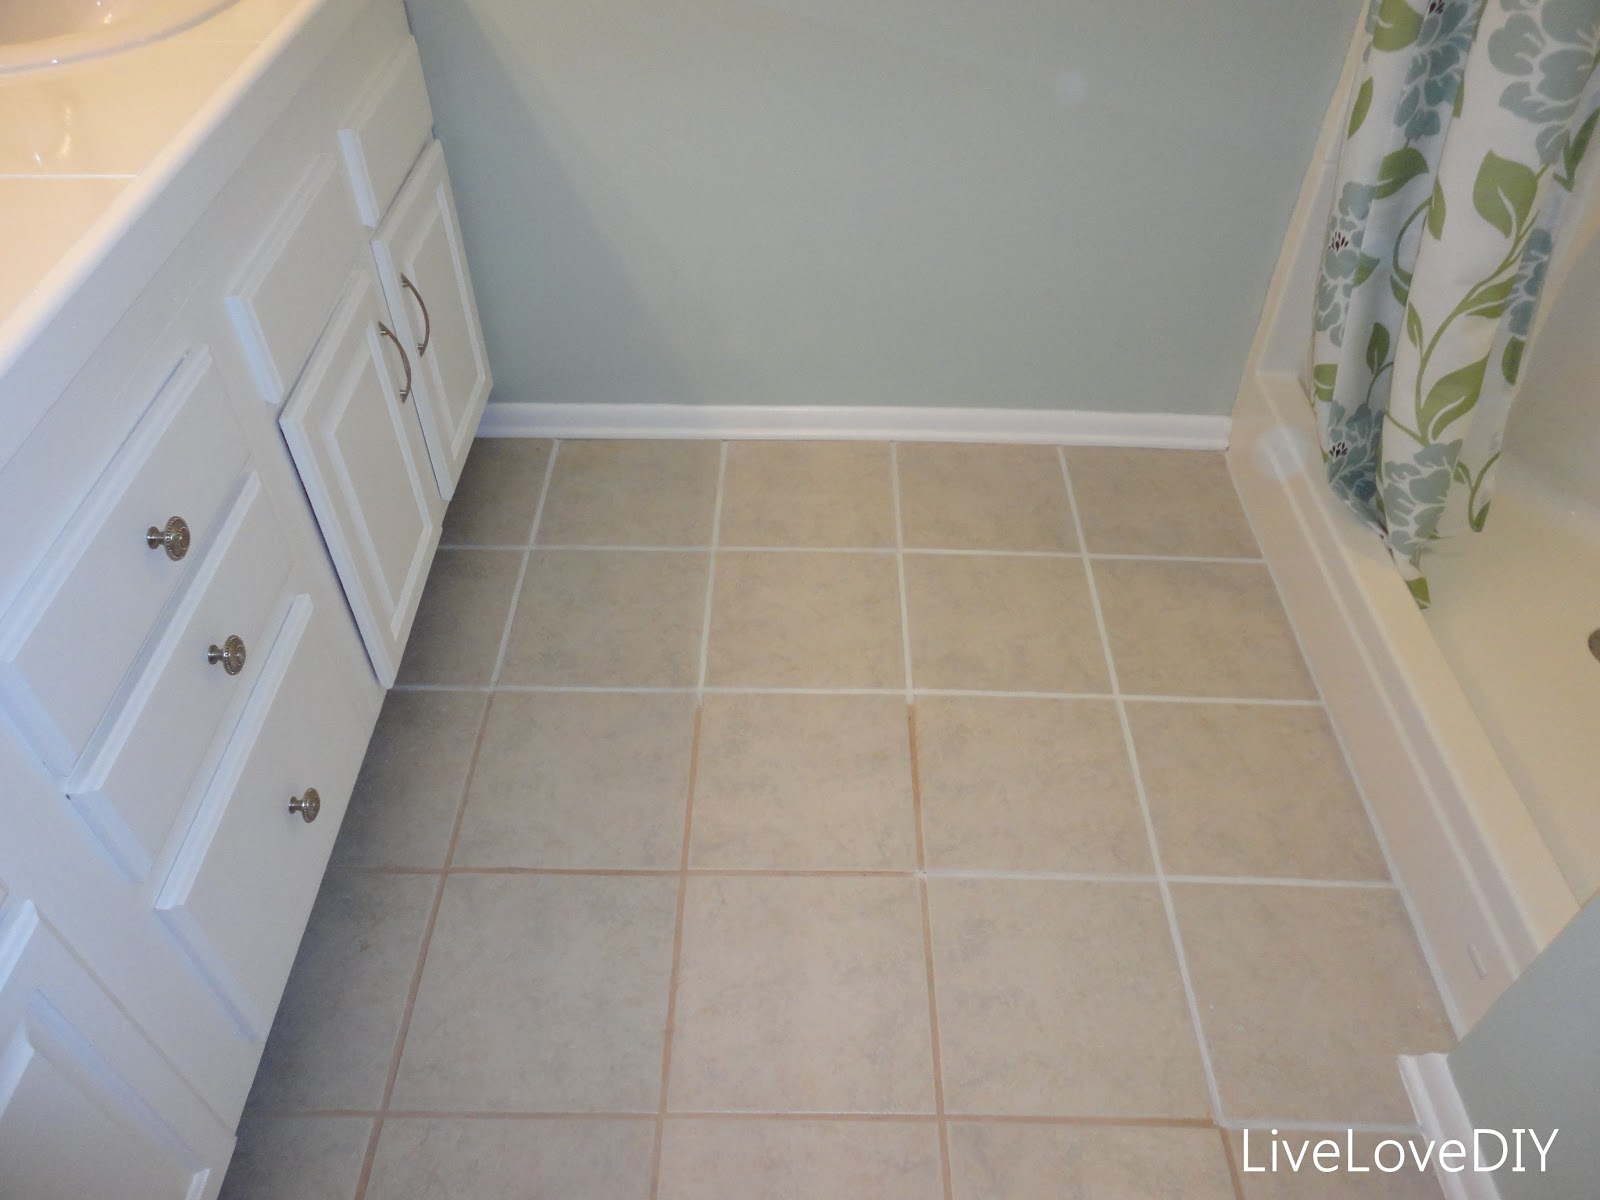 How to clean grout on bathroom floor tiles - To